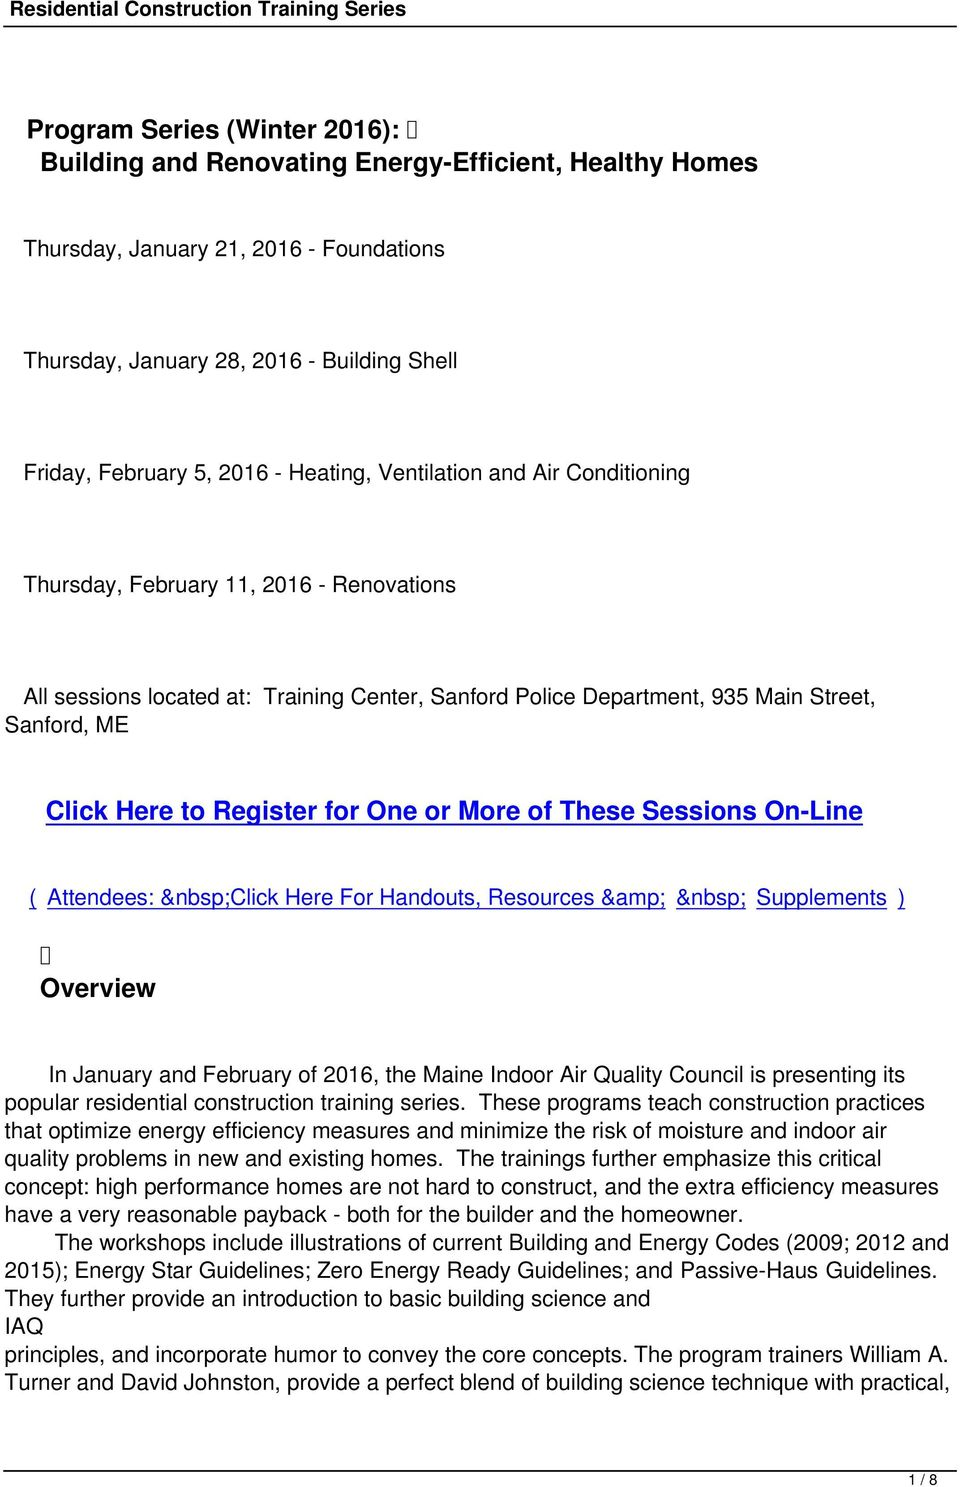 Register for One or More of These Sessions On-Line ( Attendees: Click Here For Handouts, Resources & Supplements ) Overview In January and February of 2016, the Maine Indoor Air Quality Council is